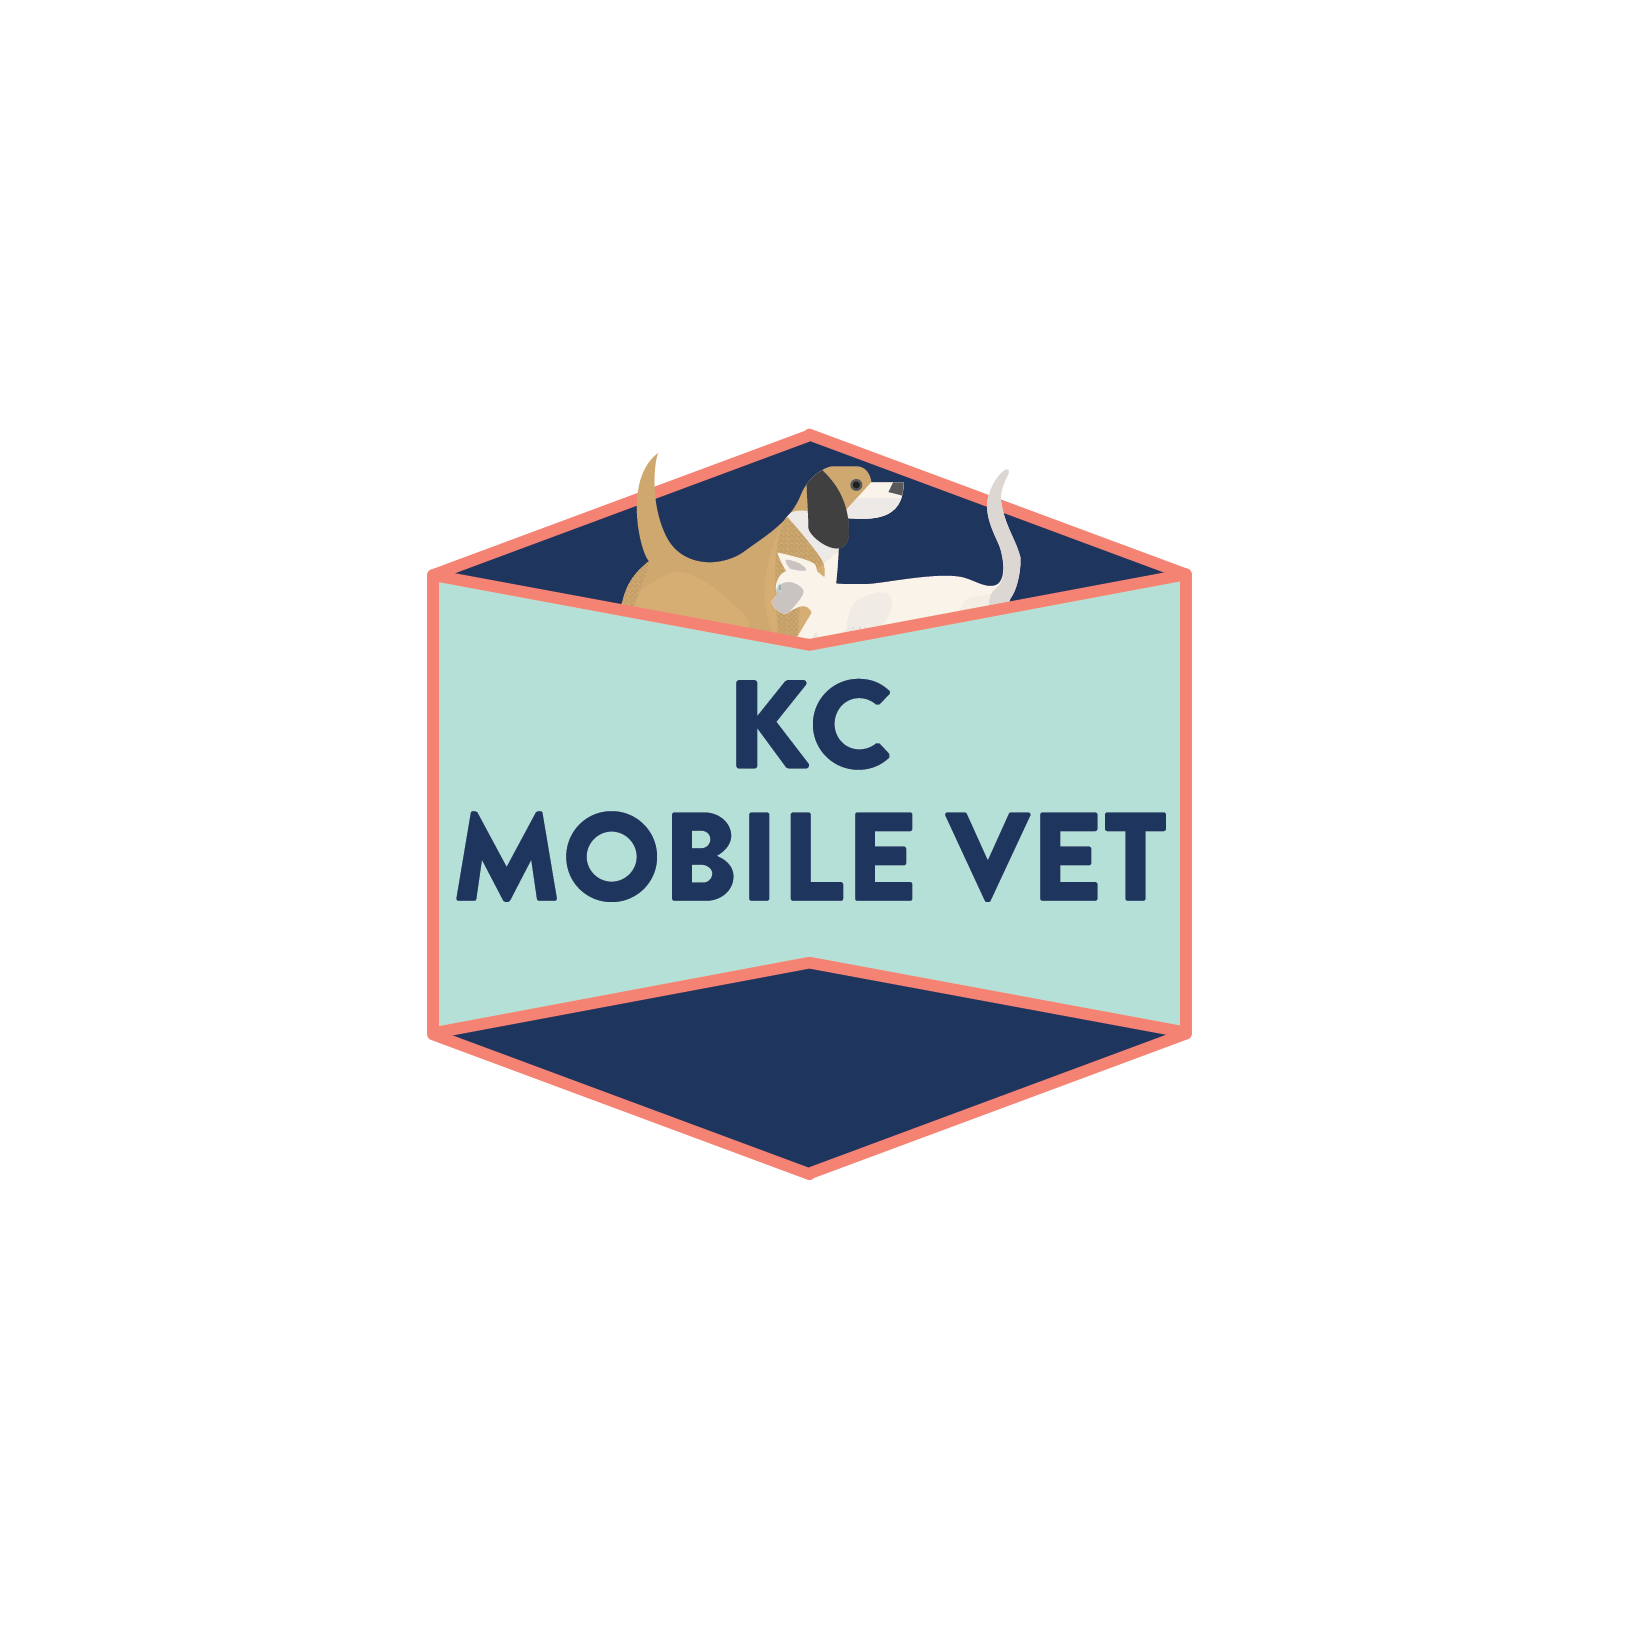 Mobile Vet Near Me About Kc Mobile Vet